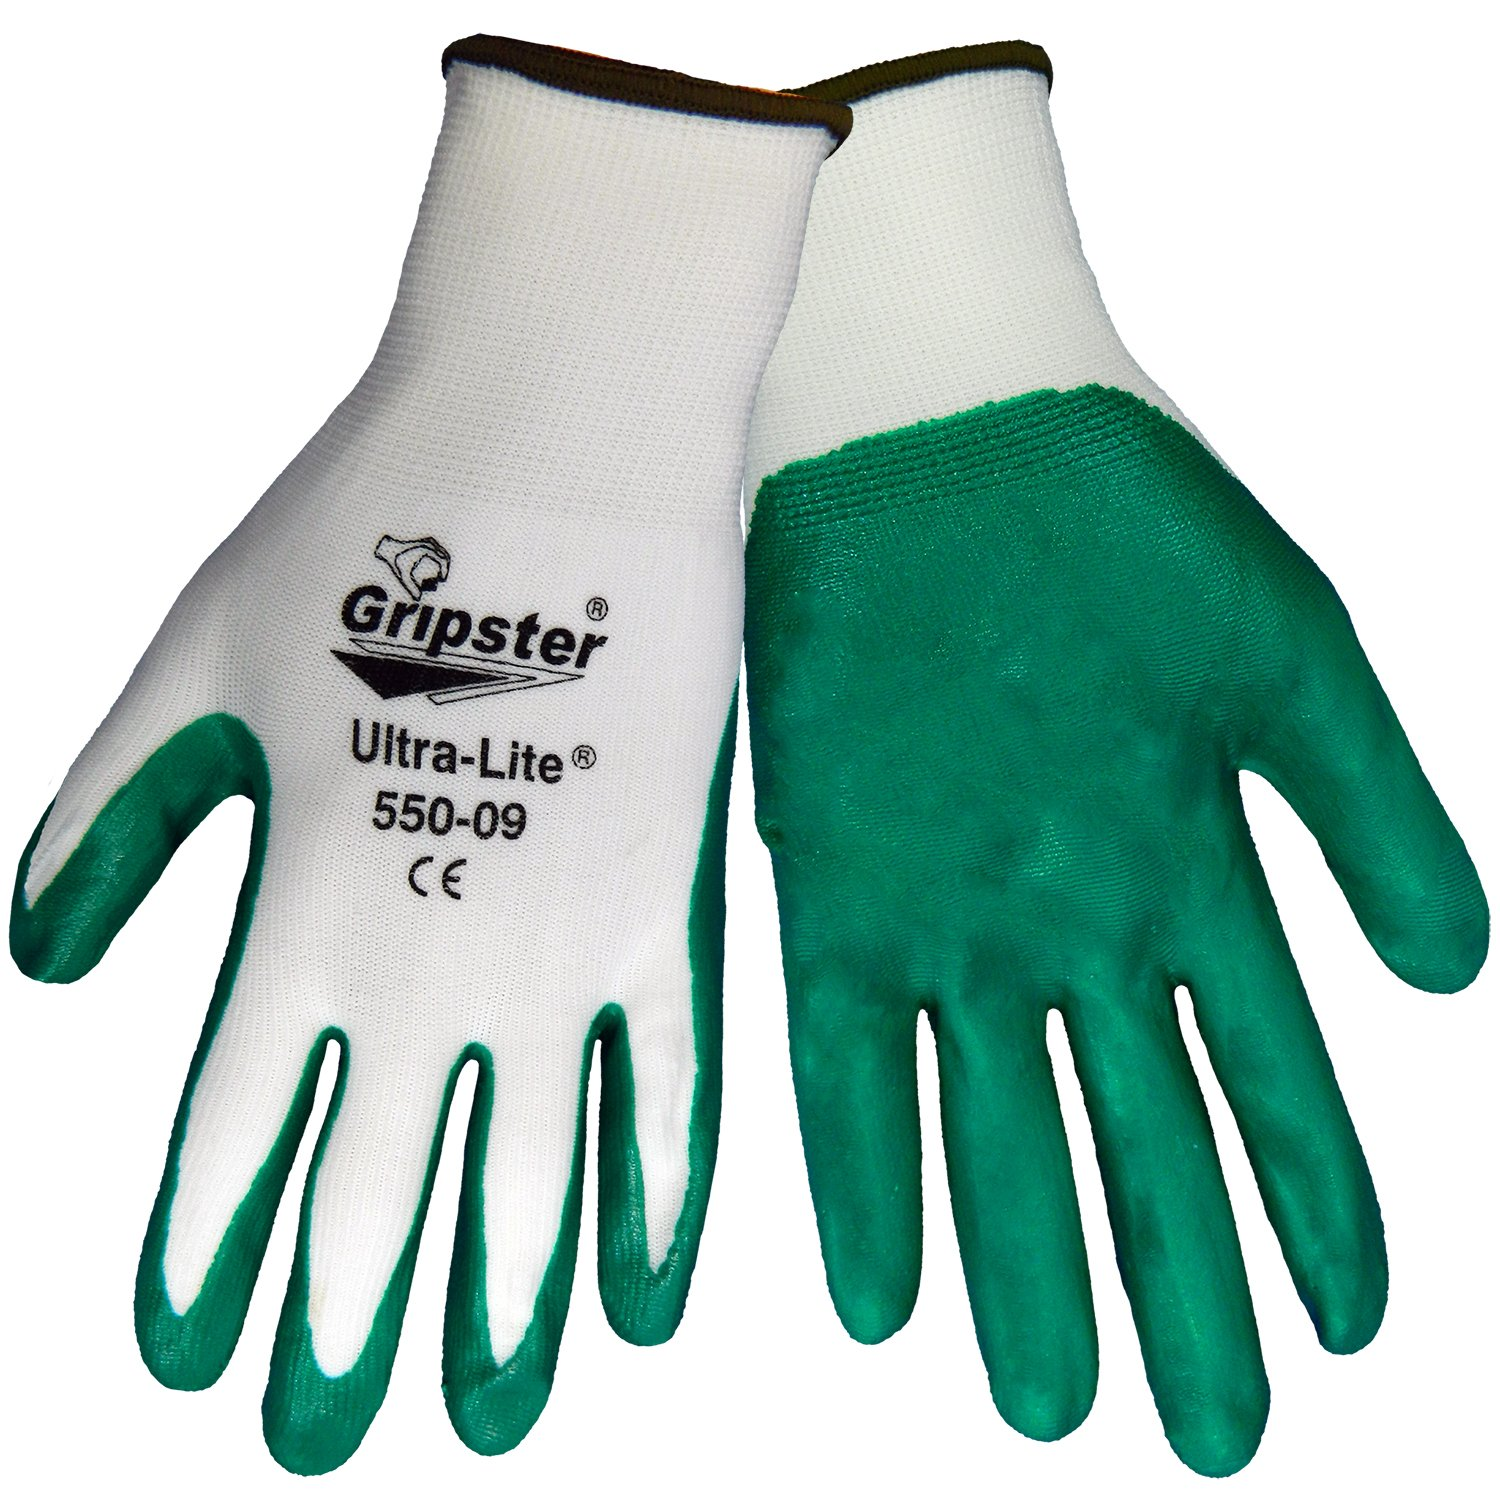 Global Glove 550 Gripster Ultralite Nitrile Glove with Knit Wrist Liner, Work, Small, Dark Green/White (Case of 72) by Global Glove